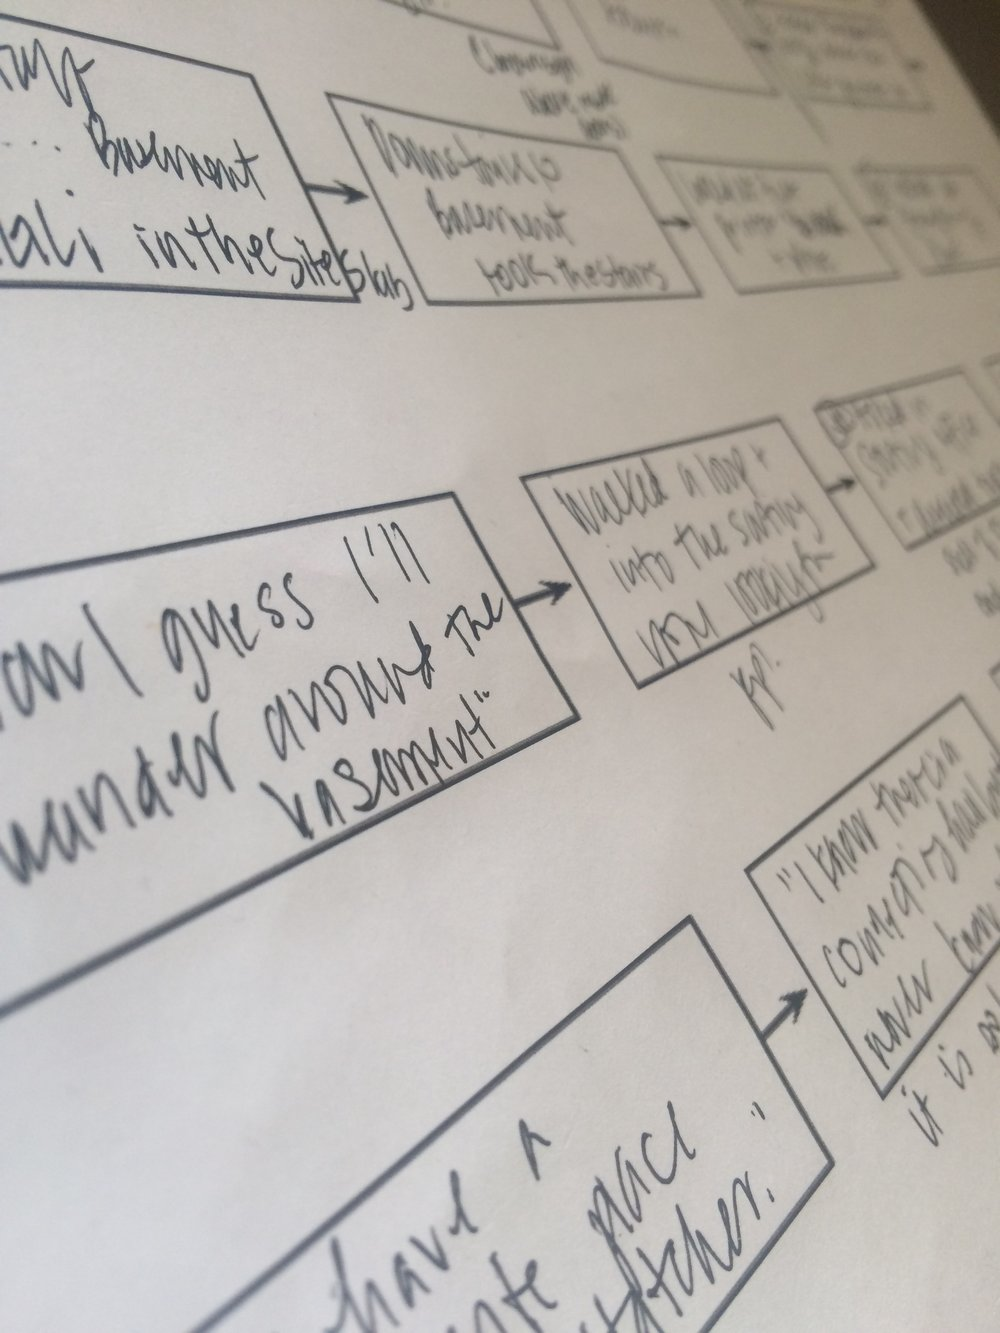 Handwritten notes from the usability test of the user's path through the tasks